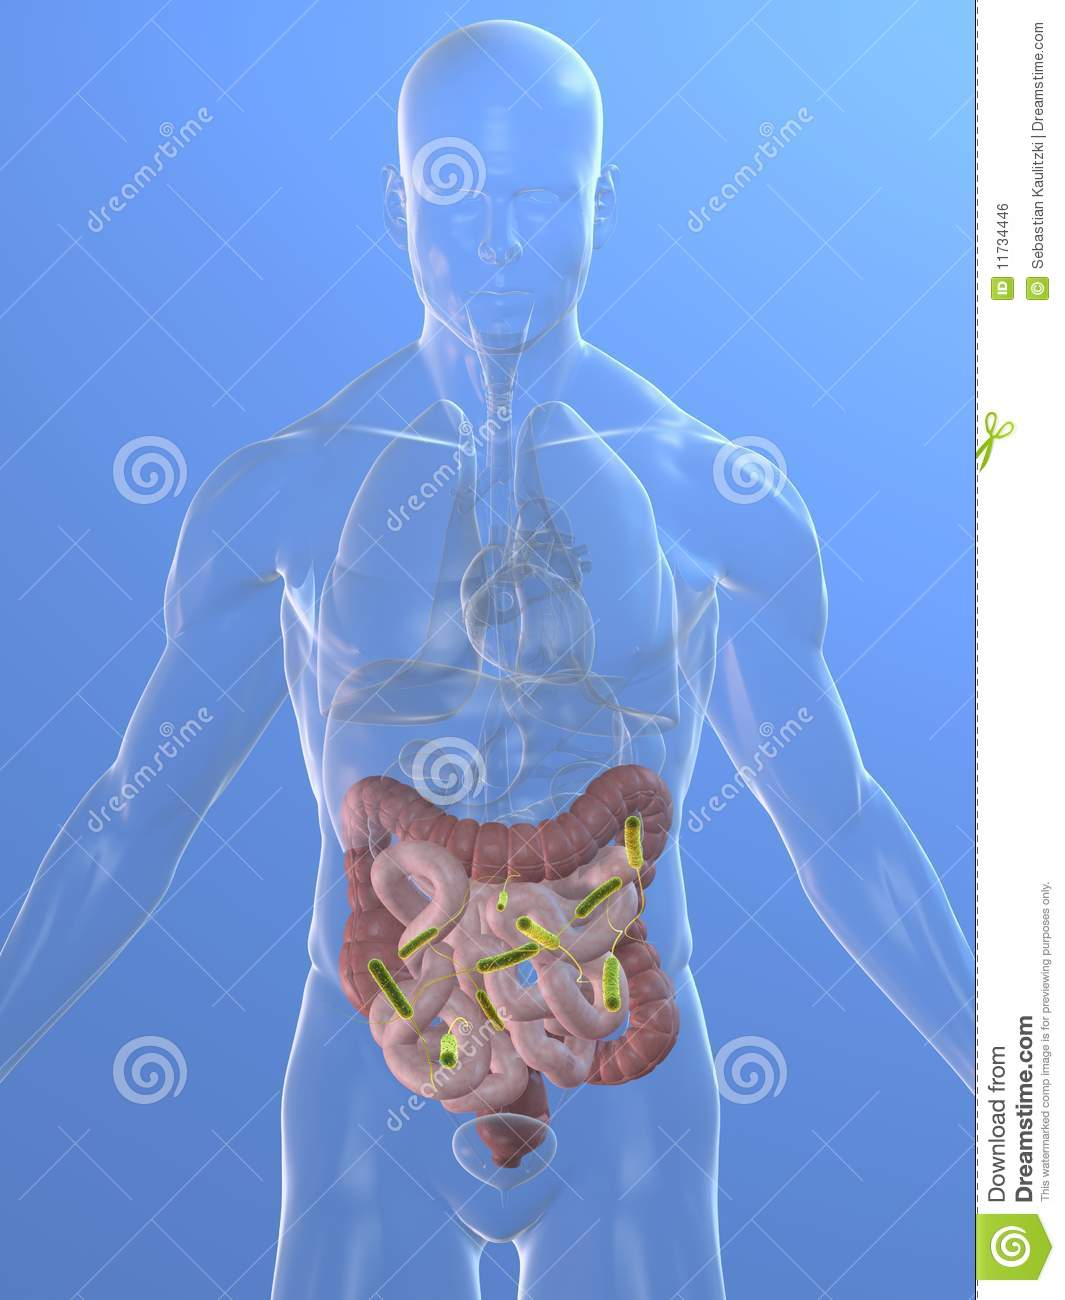 Colon Infection Royalty Free Stock Image